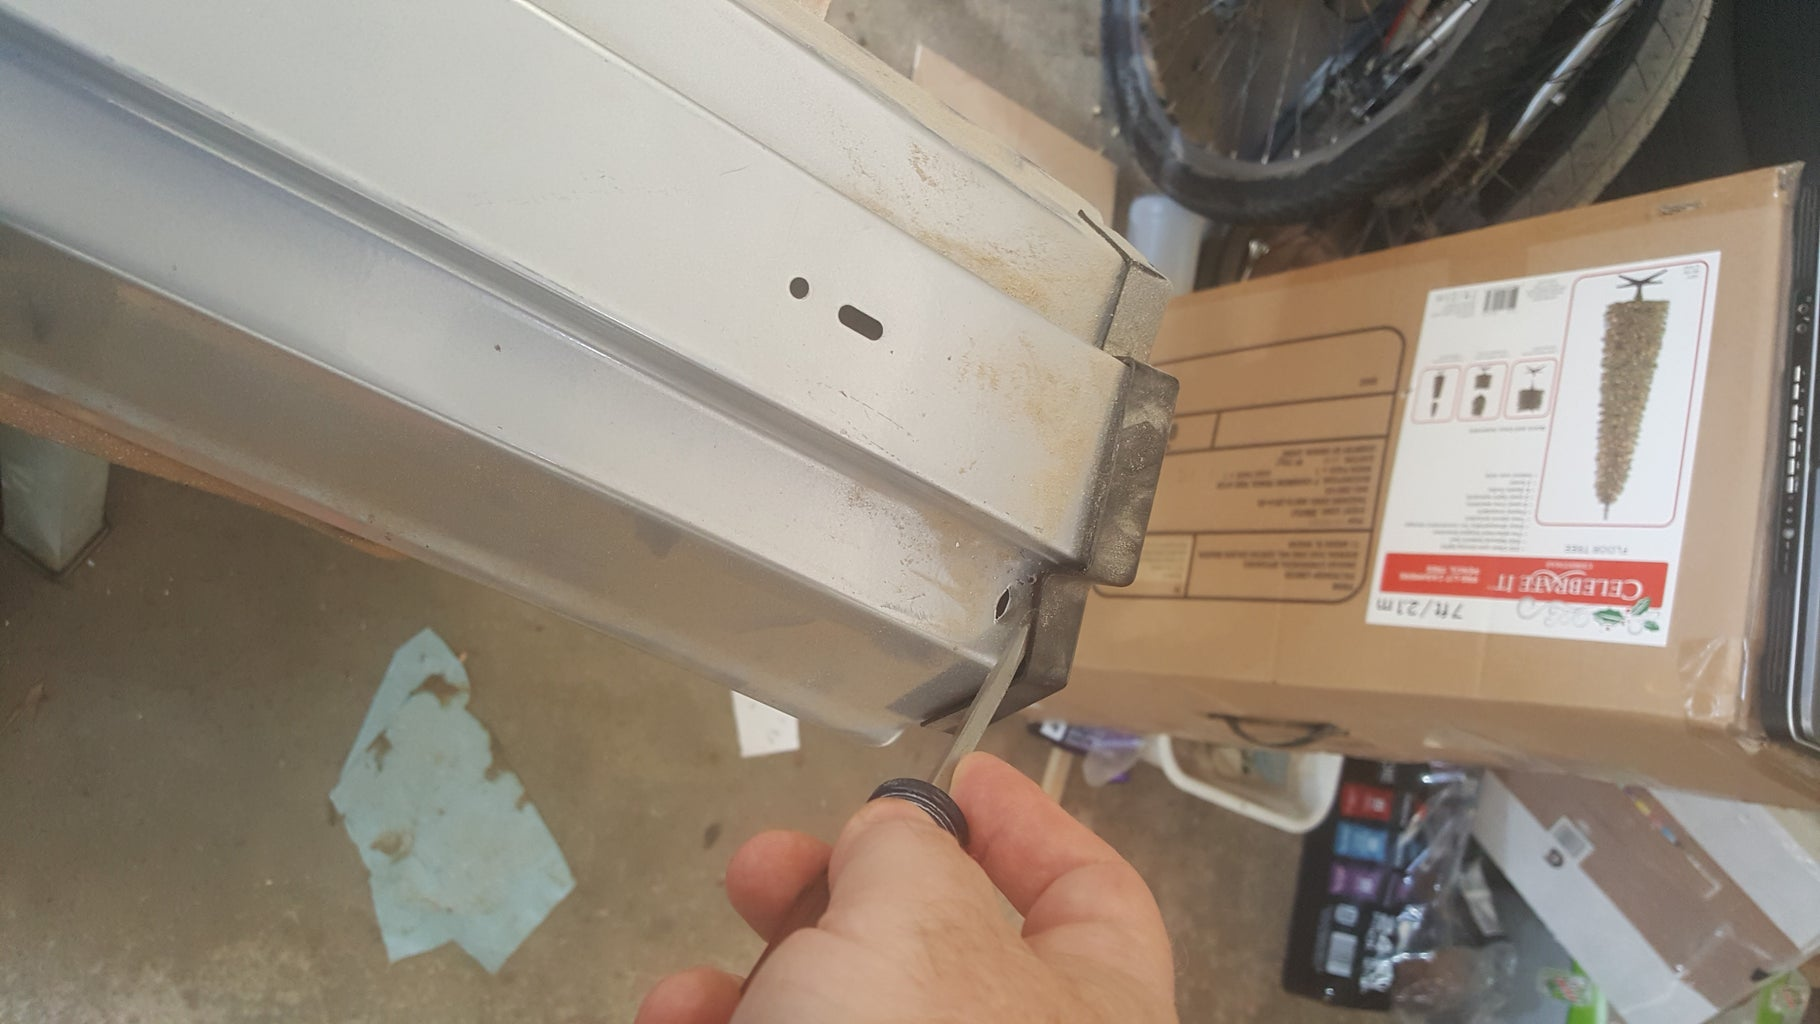 Take Apart the Old Fixture